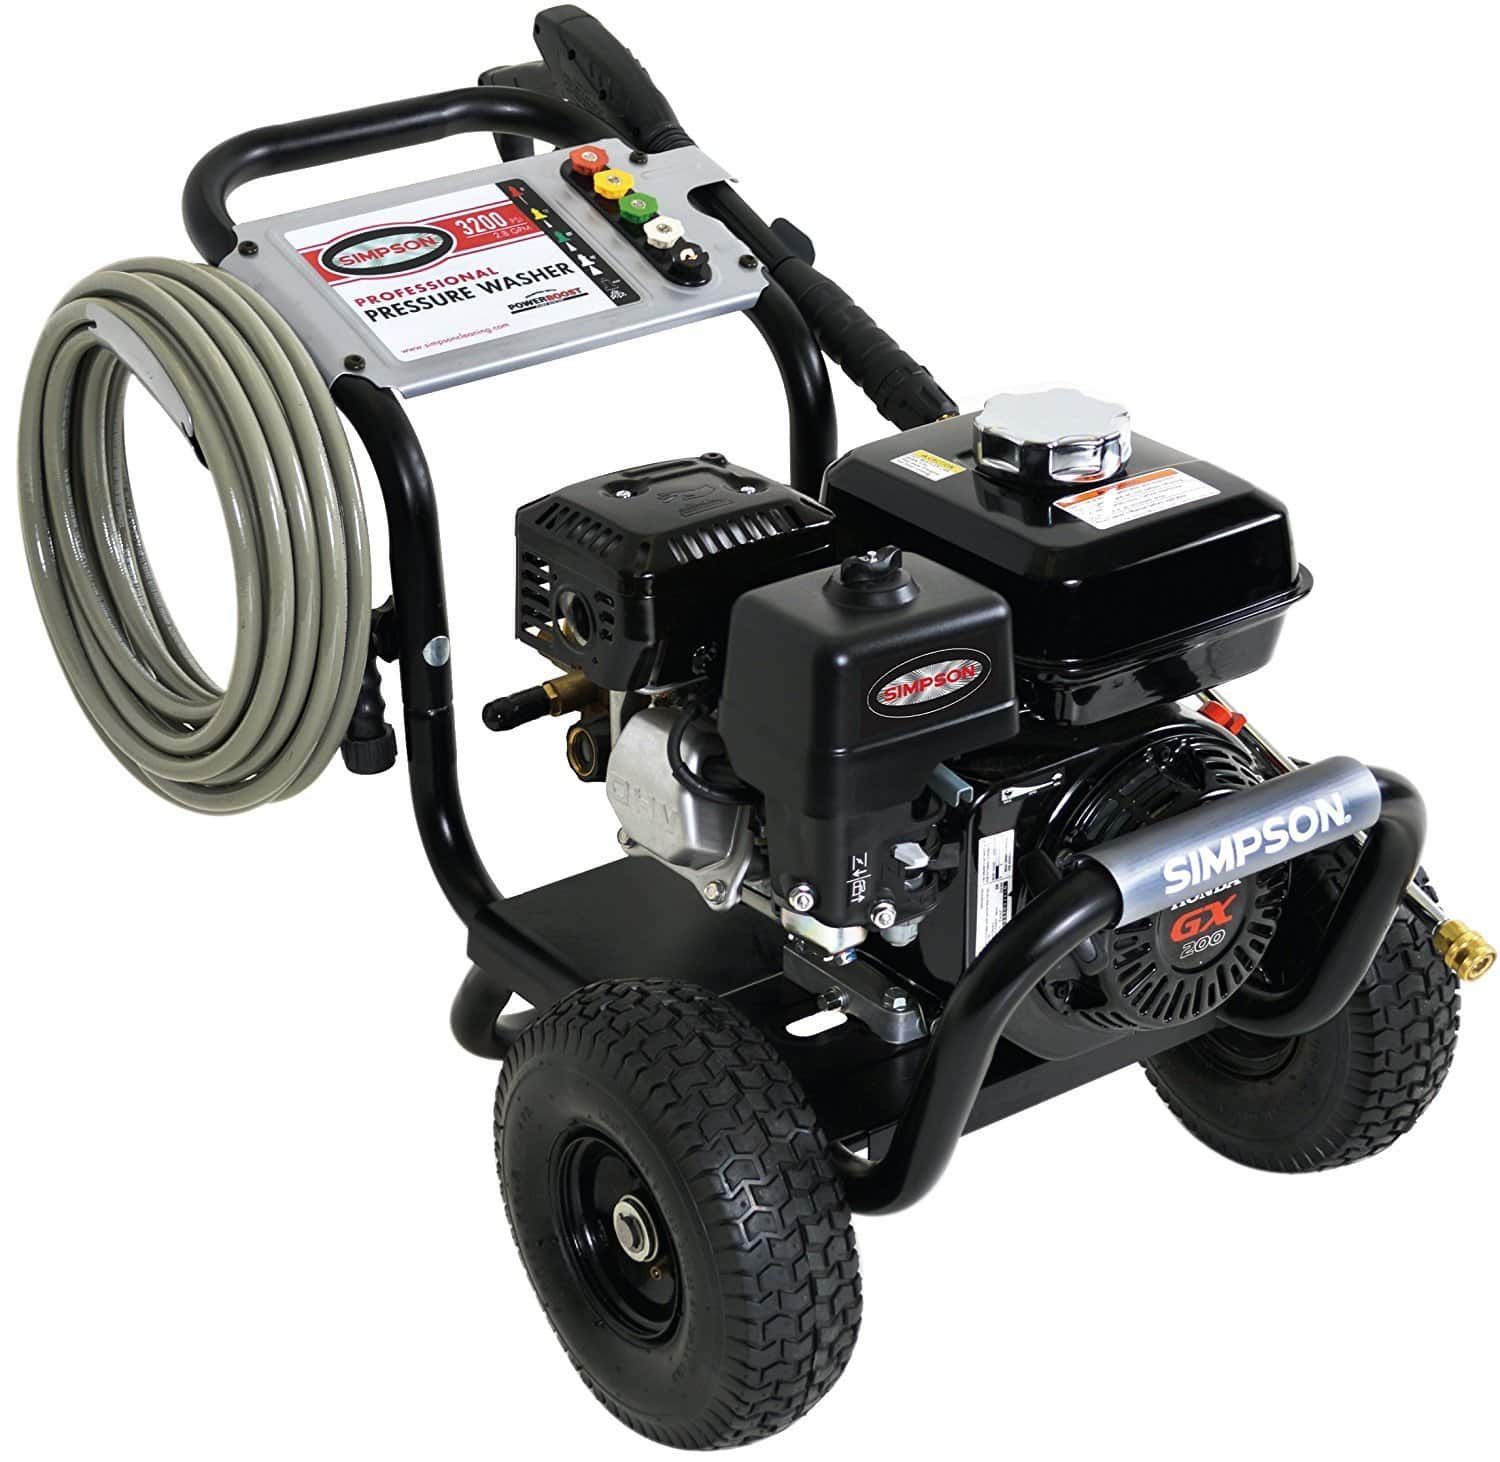 Simpson PowerShot 3200 PSI Gas Pressure Washer $449 shipped AC at Amazon.com